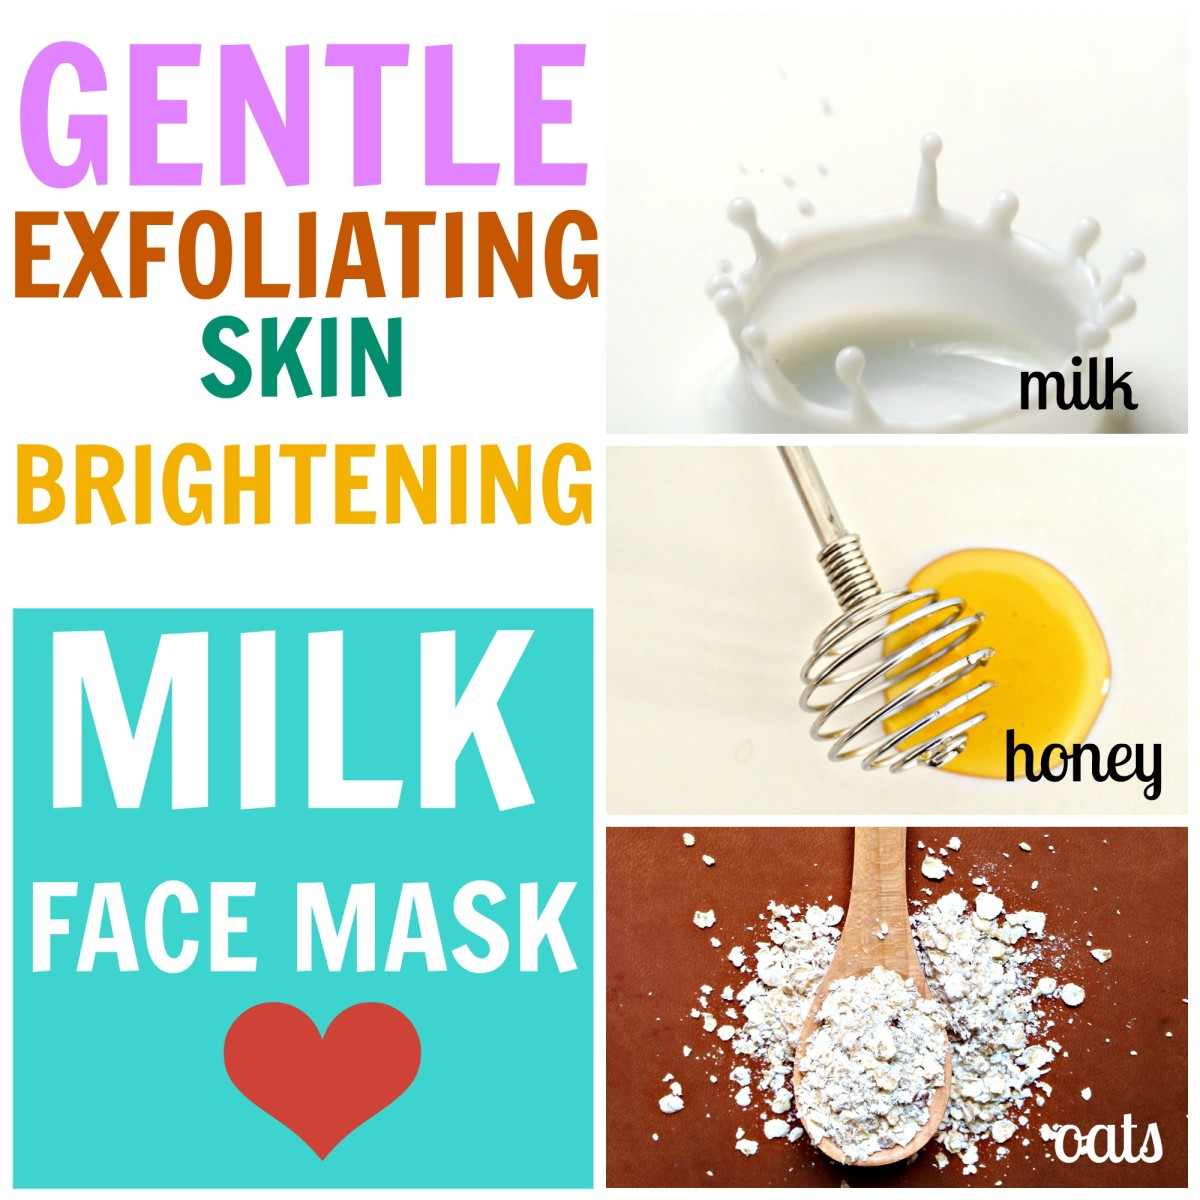 Exfoliate with a milk face mask containing honey and oats to reveal bright, beautiful & glowing skin.